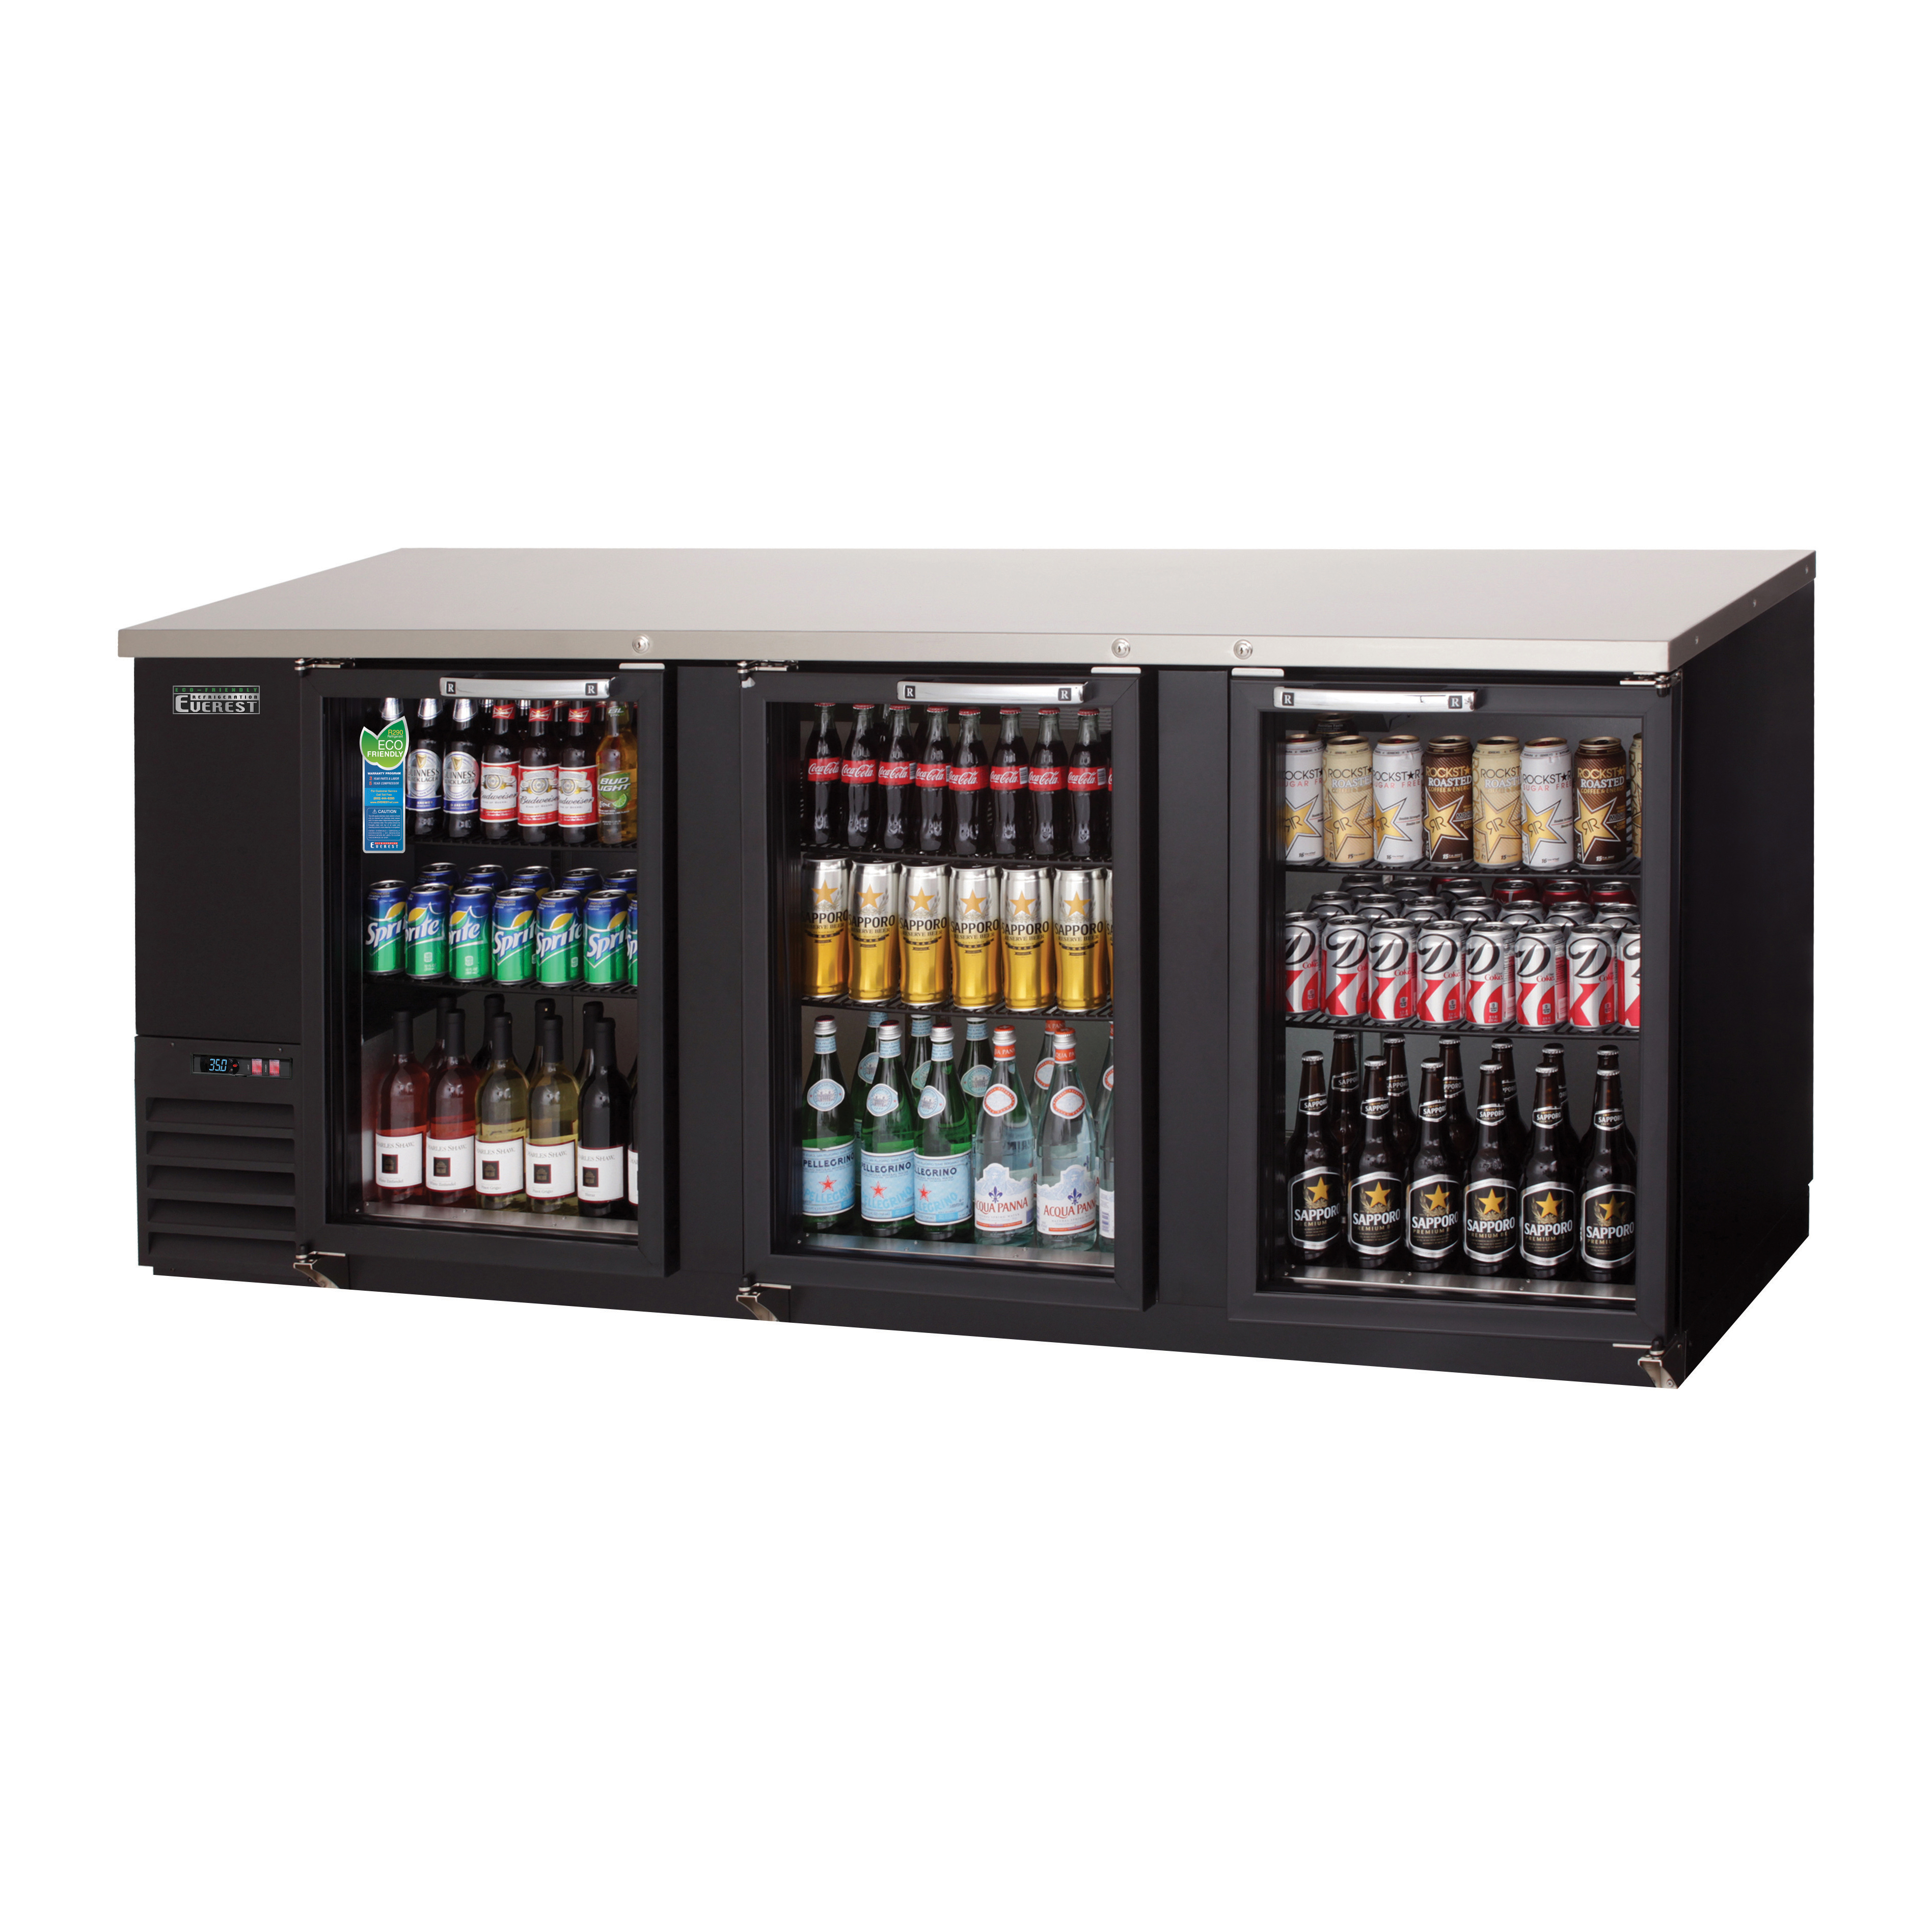 Everest Refrigeration EBB90G-24 back bar cabinet, refrigerated